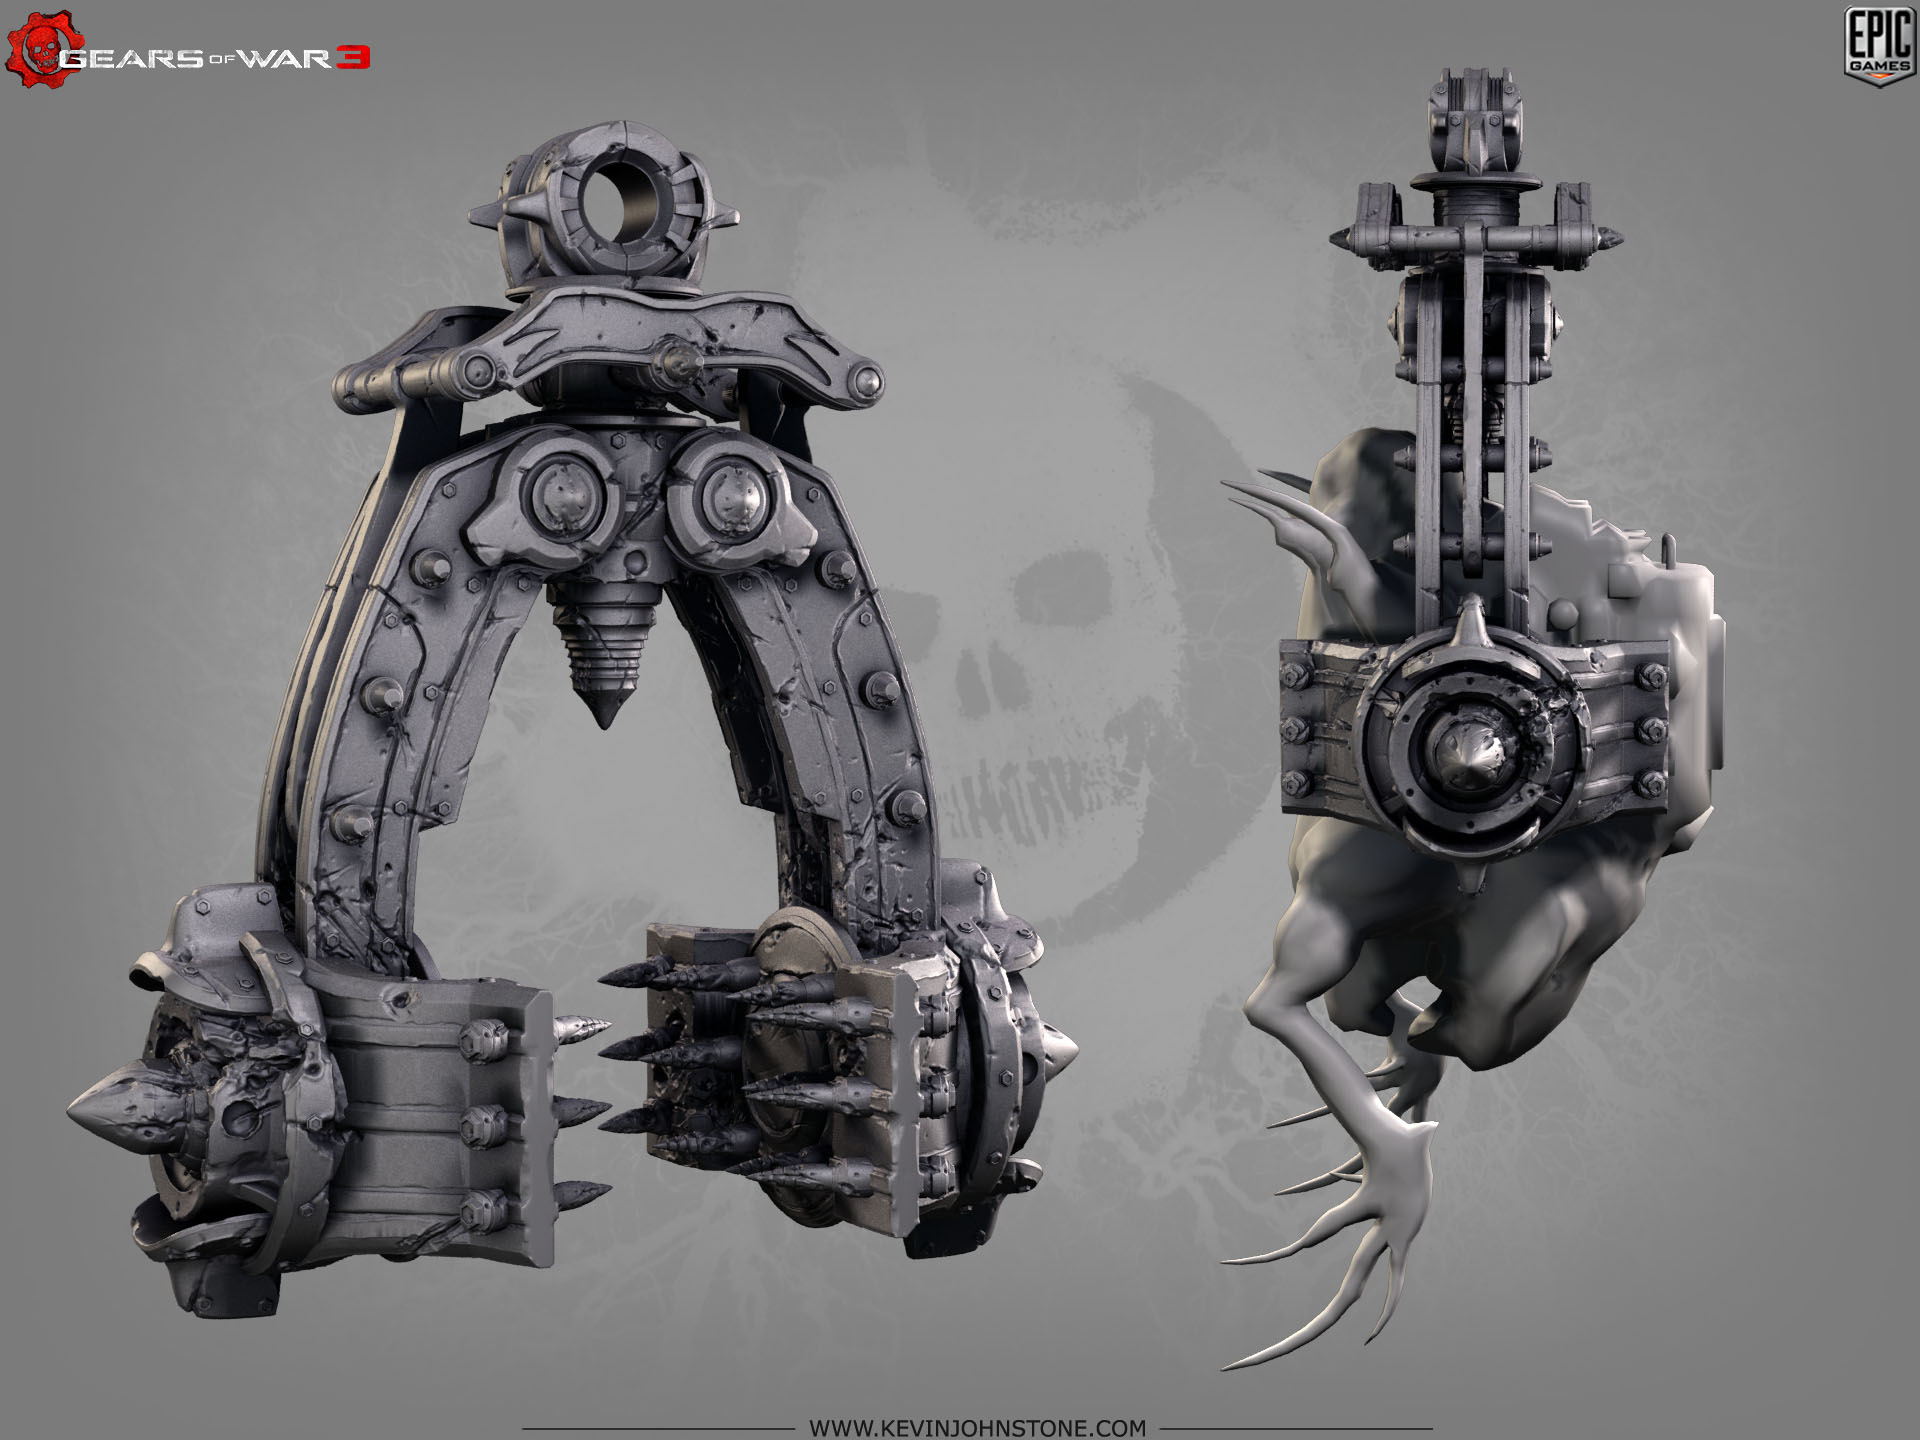 Gears of War 3 - Environment Art - Page 4